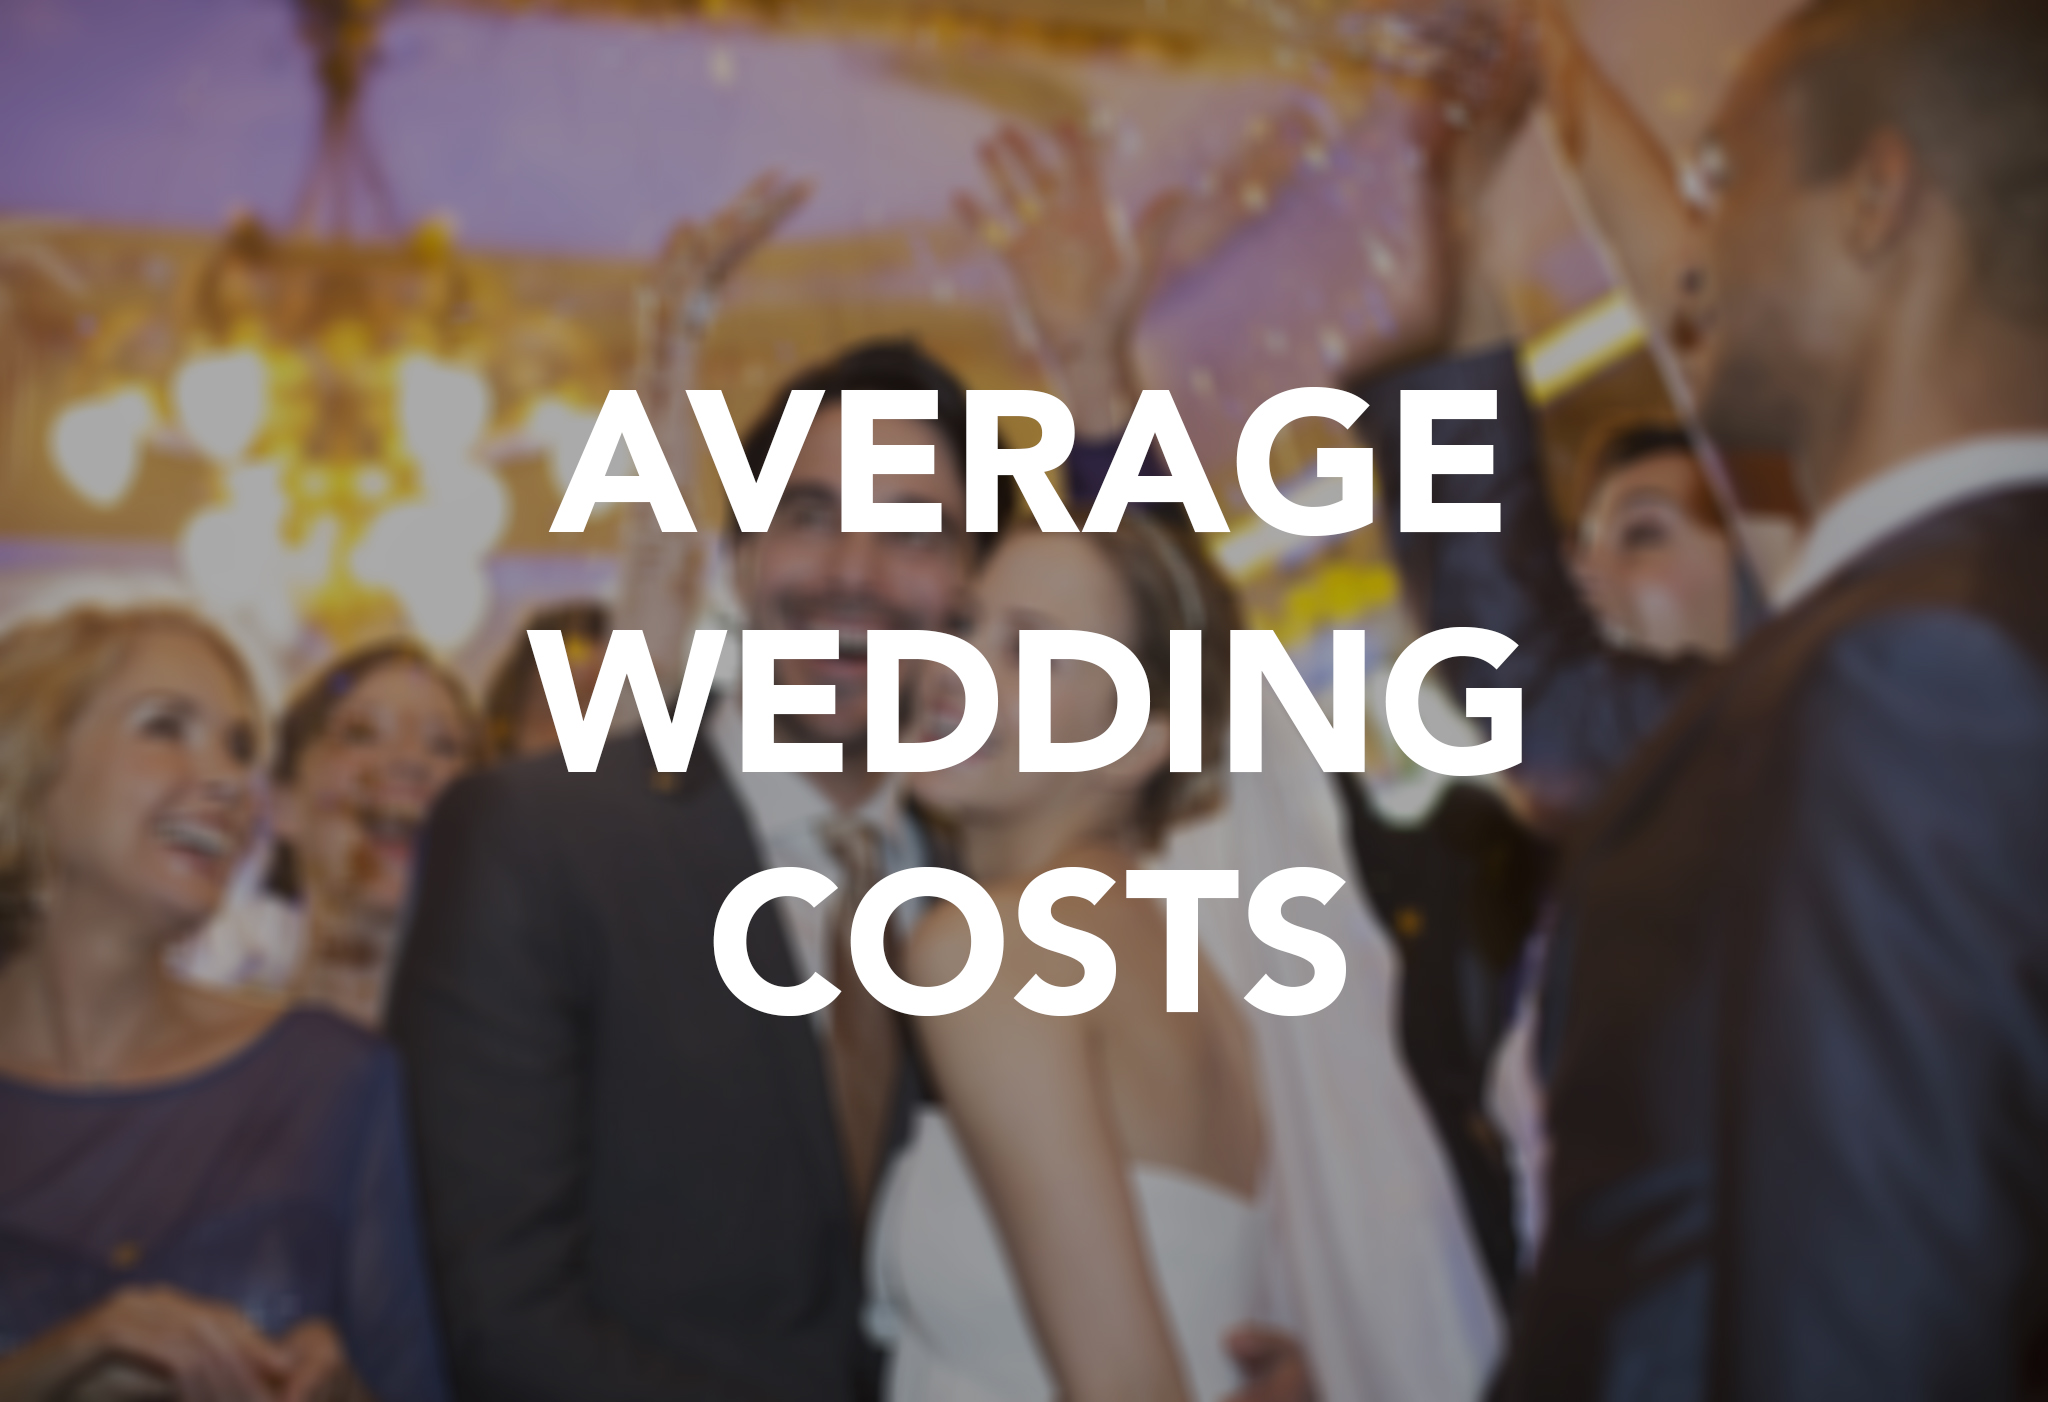 Average Wedding Costs 2015.How Much The Average Wedding Cost In 2015 Item By Item